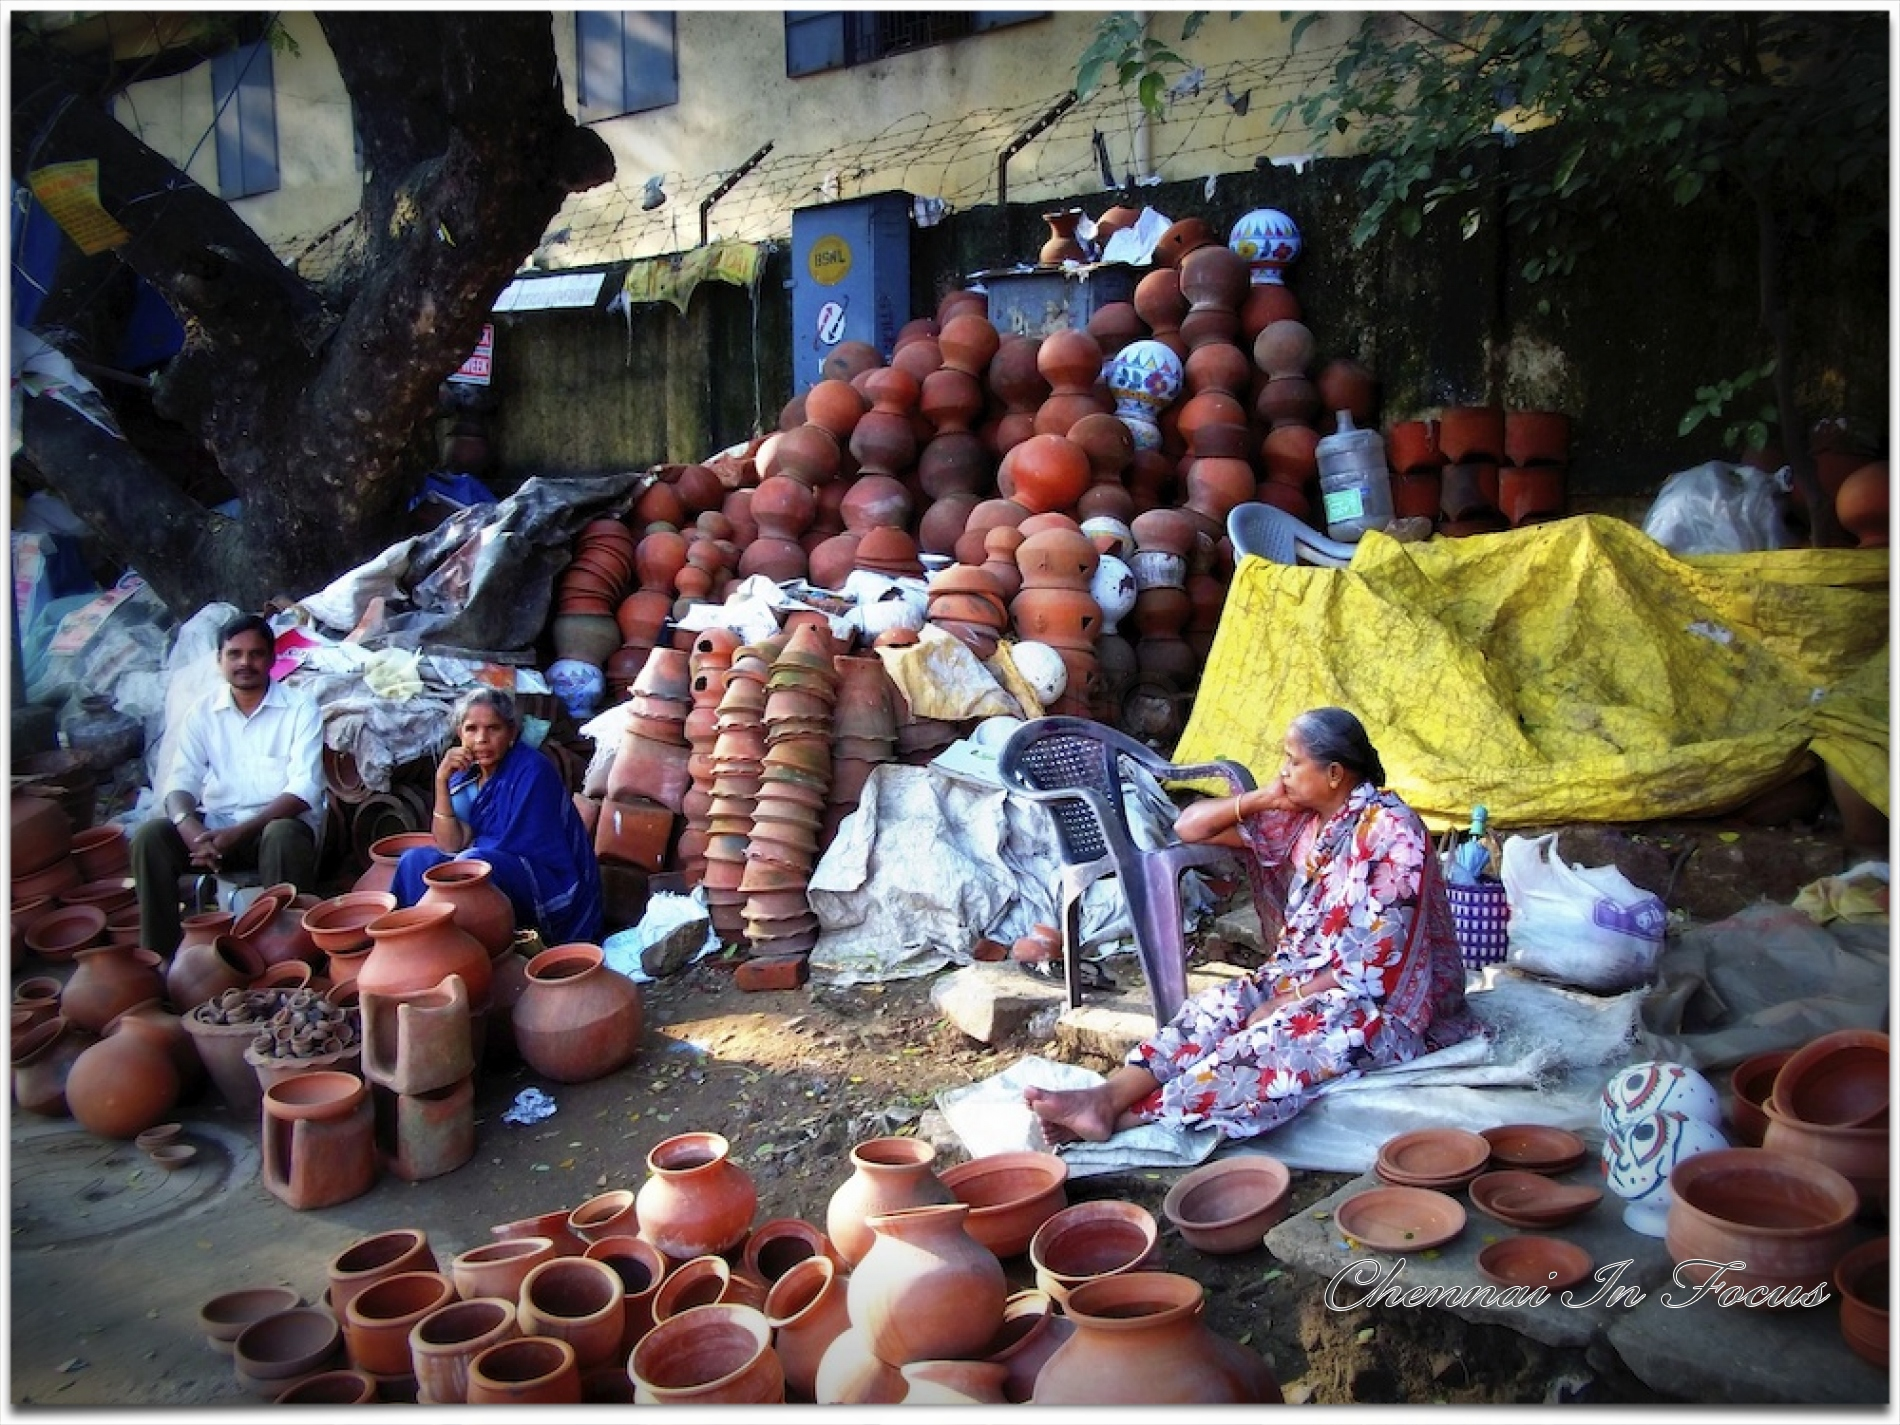 Clay pot cooking | Clay Pot - Chennai In Focus